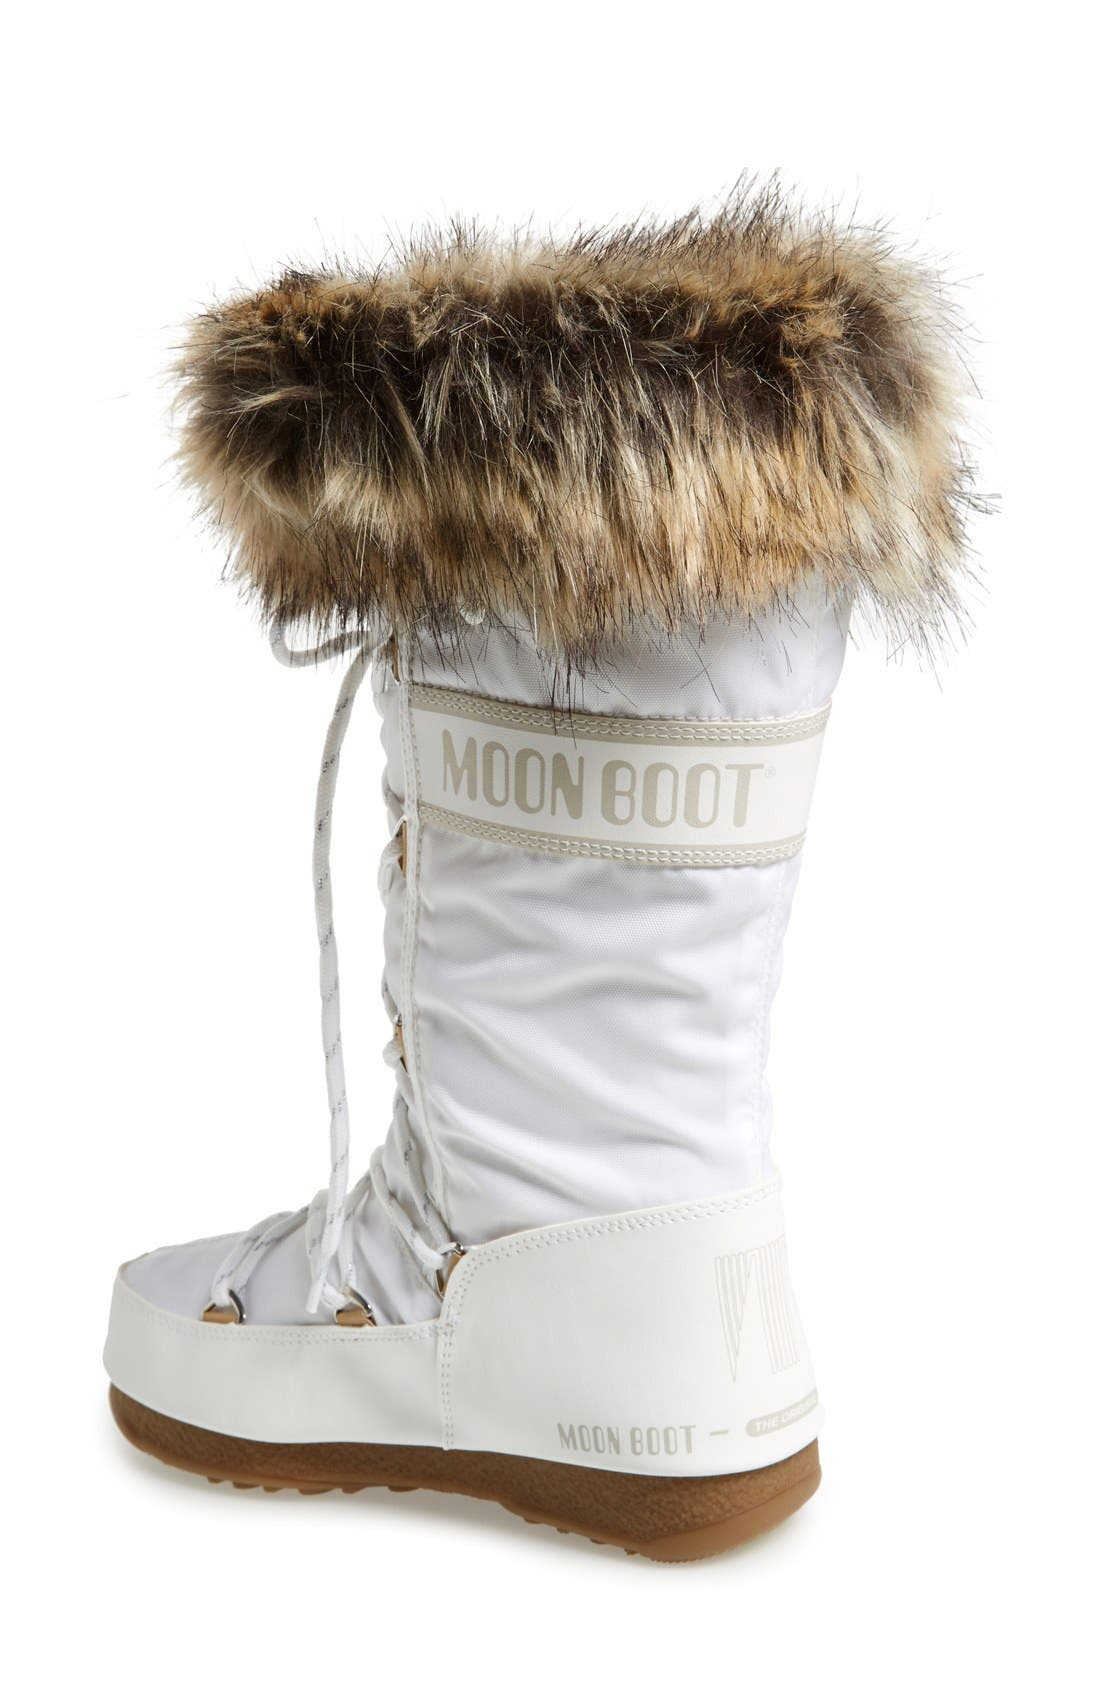 'Monaco' Waterproof Insulated Moon Boot<sup>®</sup>,                             Alternate thumbnail 2, color,                             White